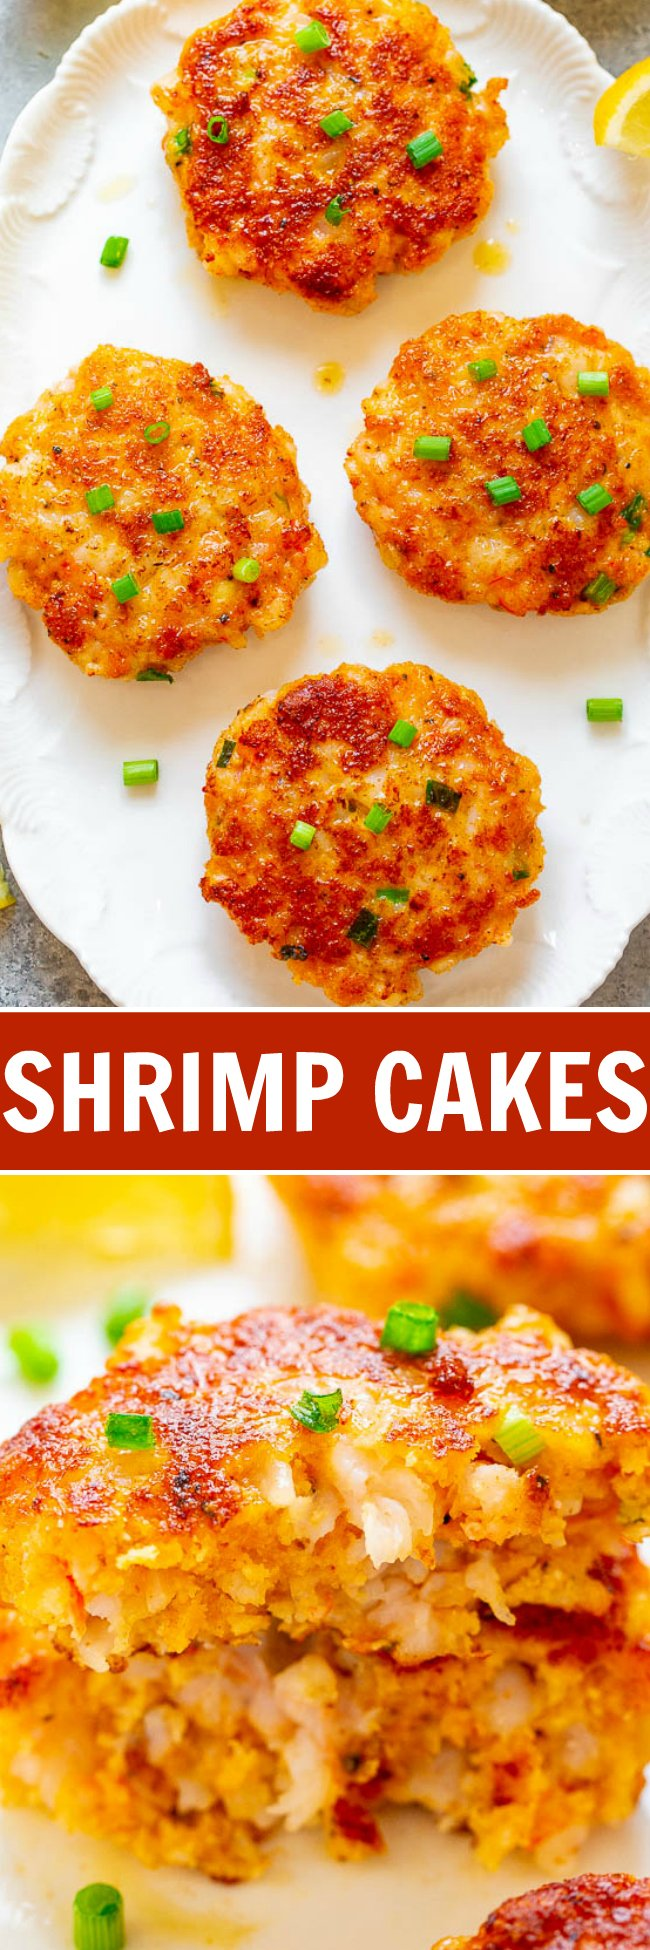 Easy Shrimp Cakes - Easy, ready in 10 minutes, and they taste better than from a fancy restaurant!! A CRISPY exterior with JUICY and tender pieces of shrimp on the inside, with spicy mayo on the side! Great as an appetizer or main course!!